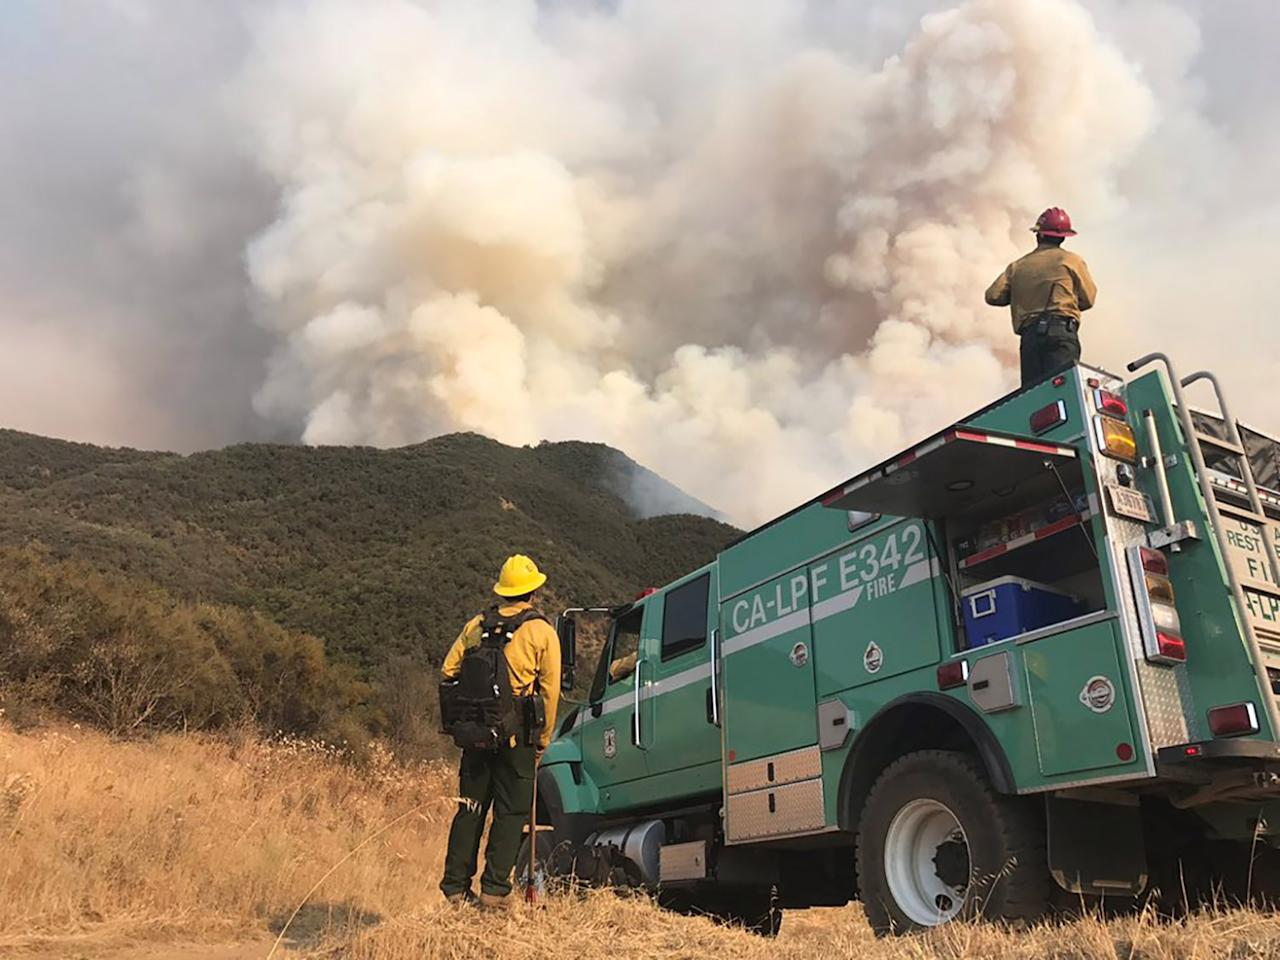 <p>Los Padres National Forest firefighters watch the northeast flank of the Whittier fire near Hot Spring Canyon outside Cachuma Lake, California, U.S. July 11, 2017. (Mike Eliason/Santa Barbara County Fire/Handout via Reuters) </p>